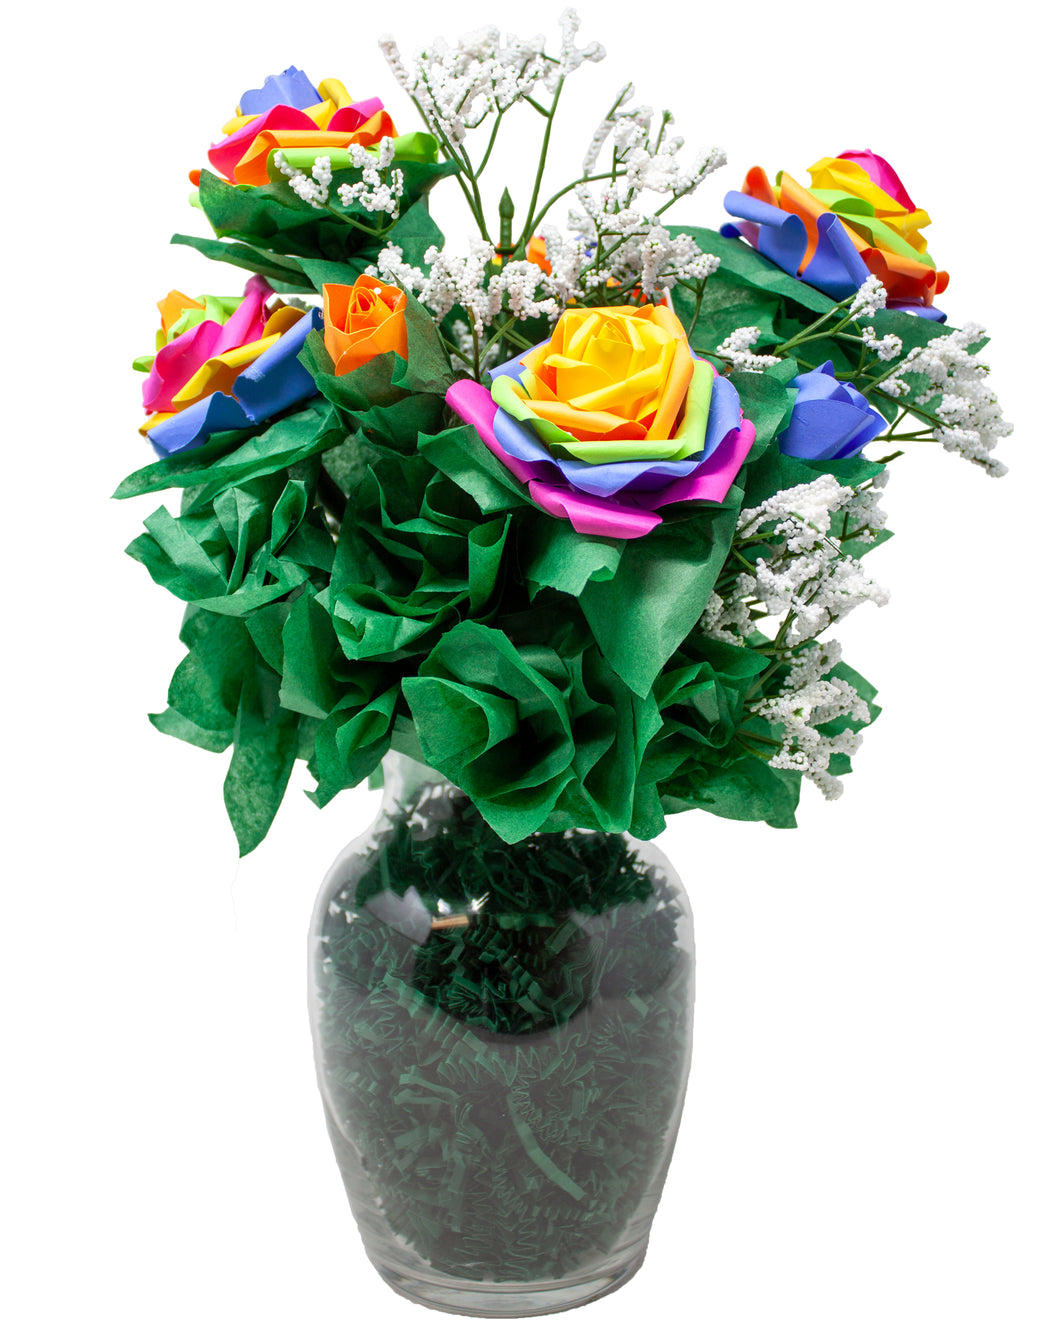 Rainbow Rose Bouquet Handmade with Paper Roses and Faux Baby's Breath